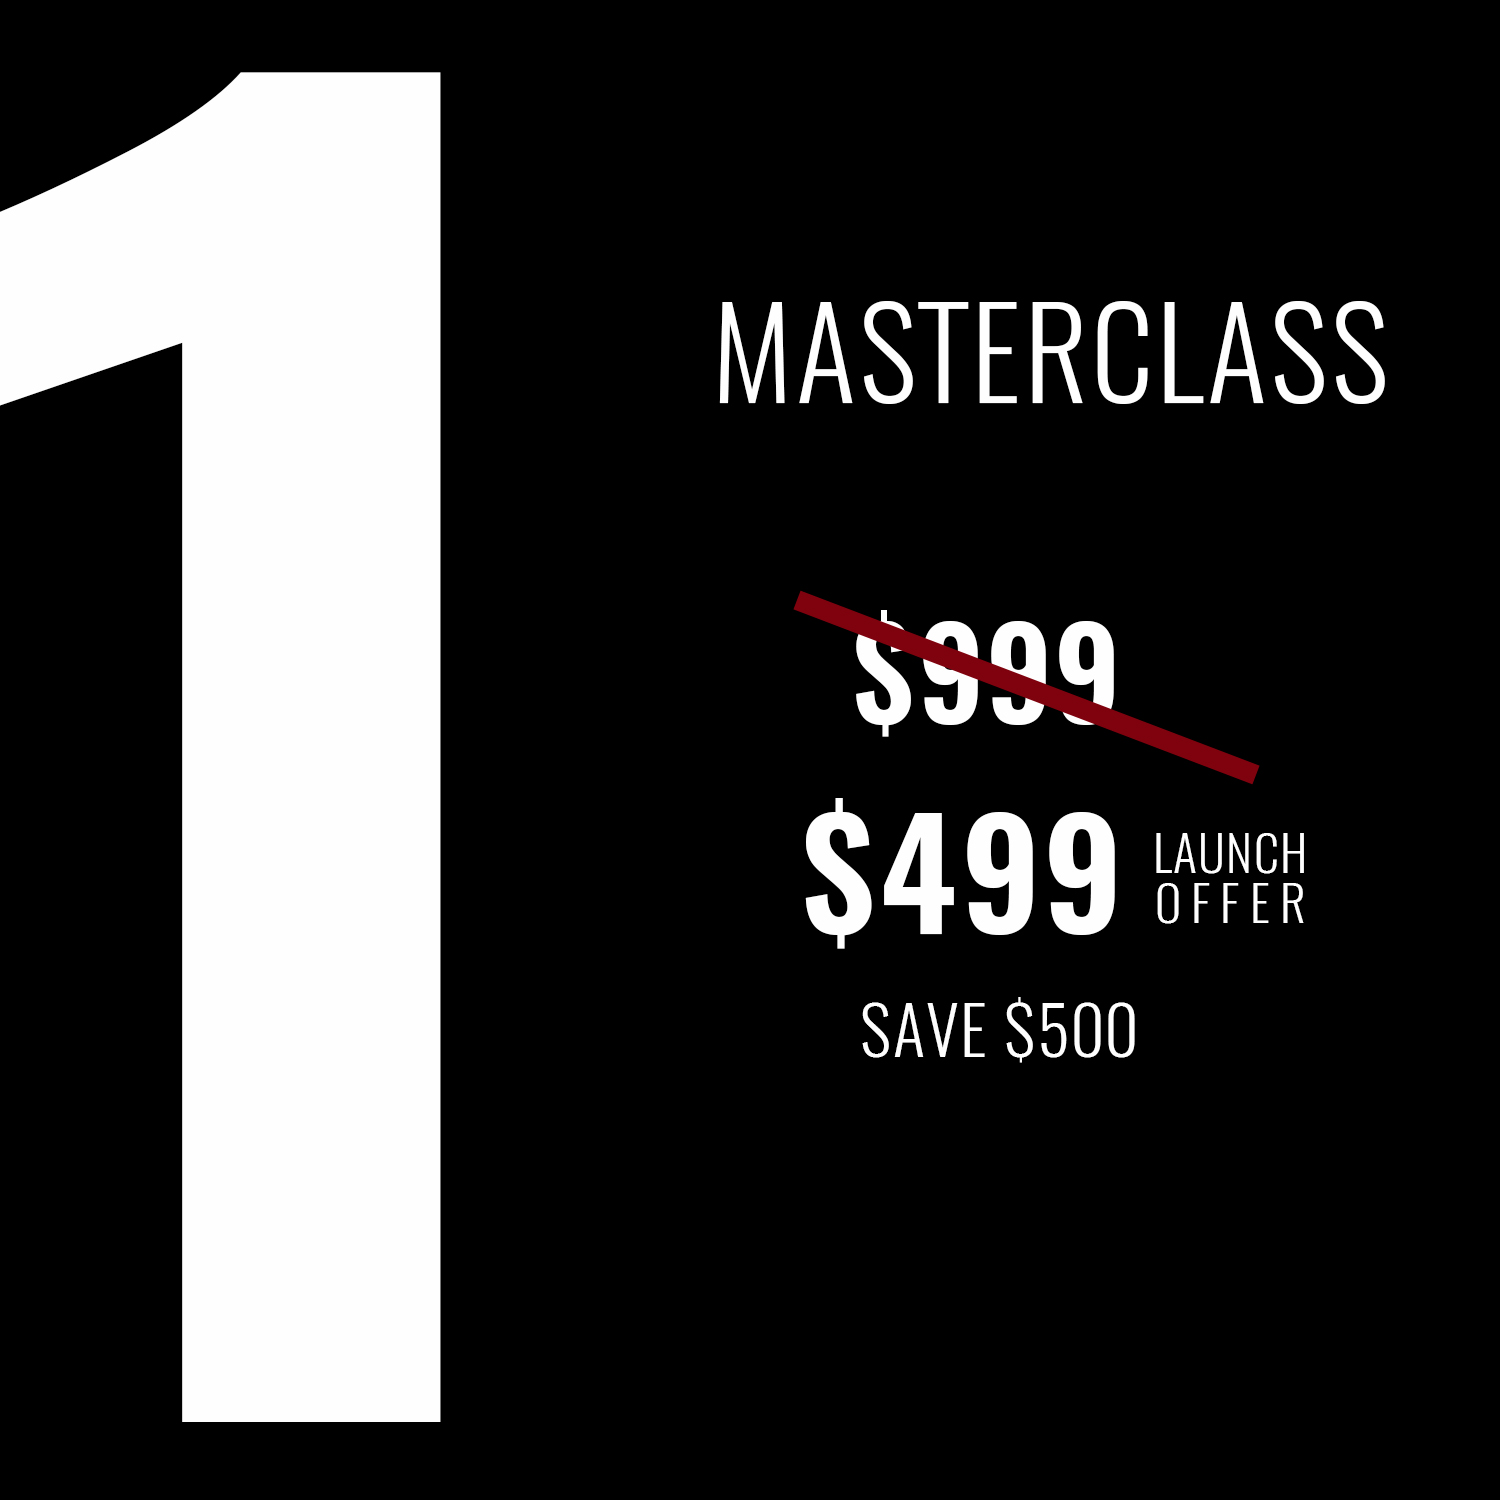 1 MASTERCLASS LAUNCH OFFER.jpg